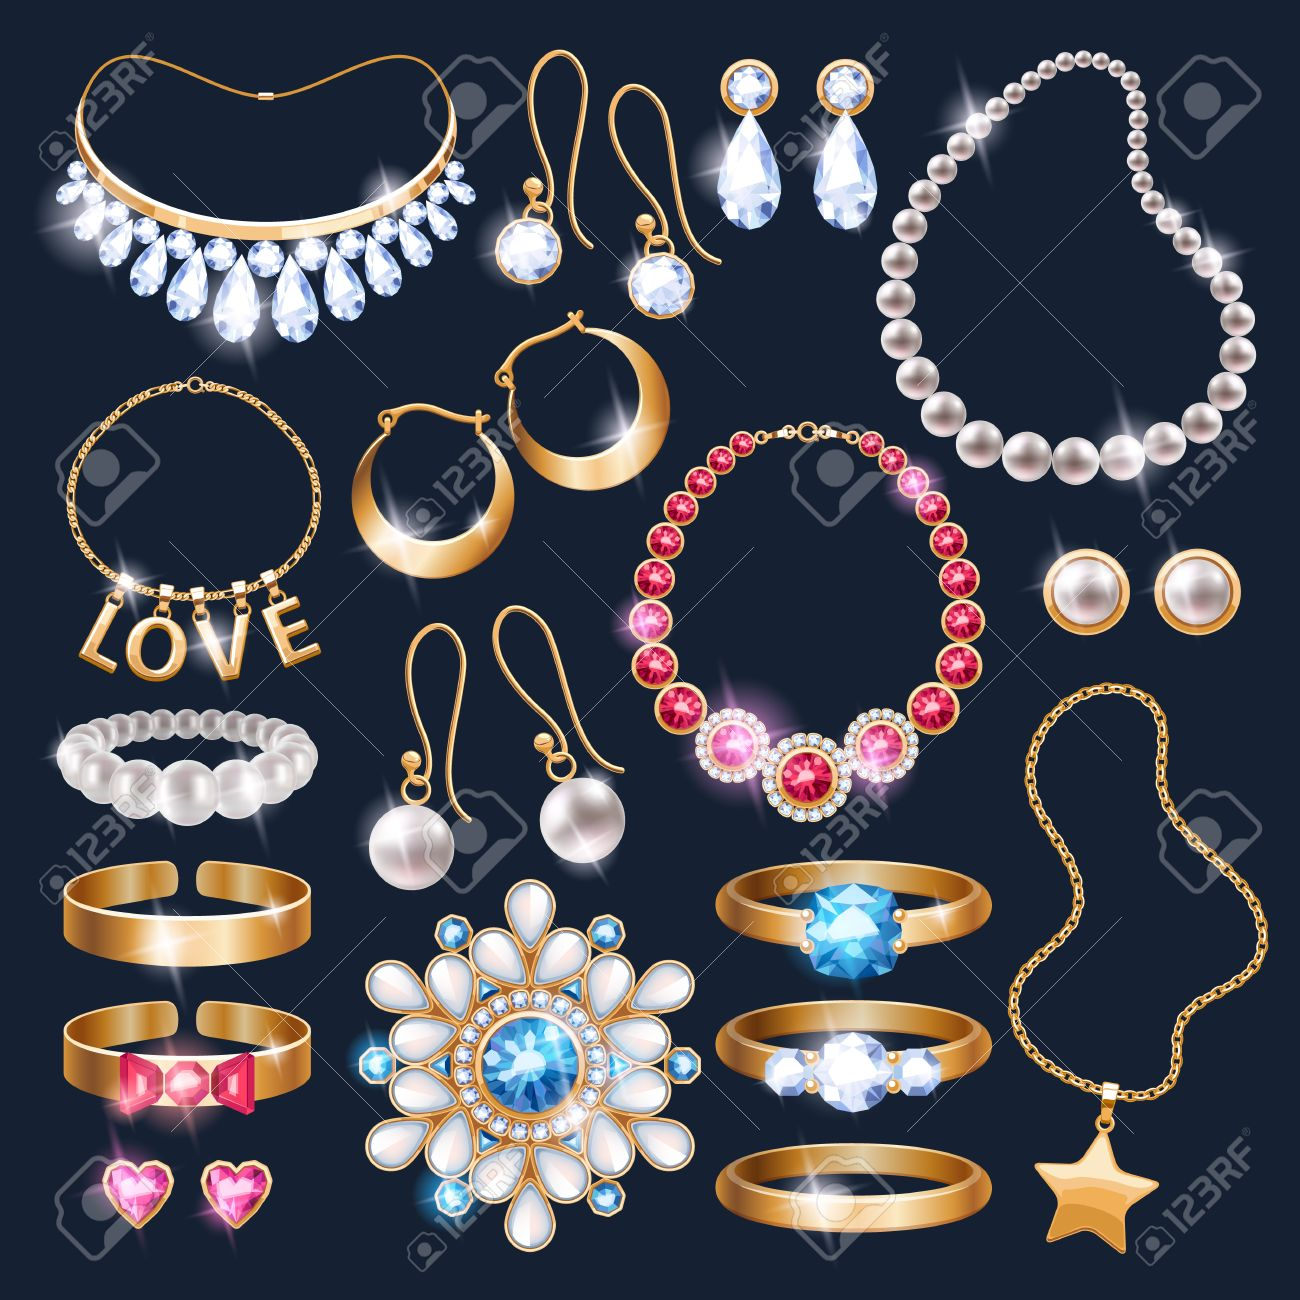 fb8ca8c19 Realistic jewelry accessories icons set. Necklace bracelet gold chain  diamond pearl earrings pendant rings vector